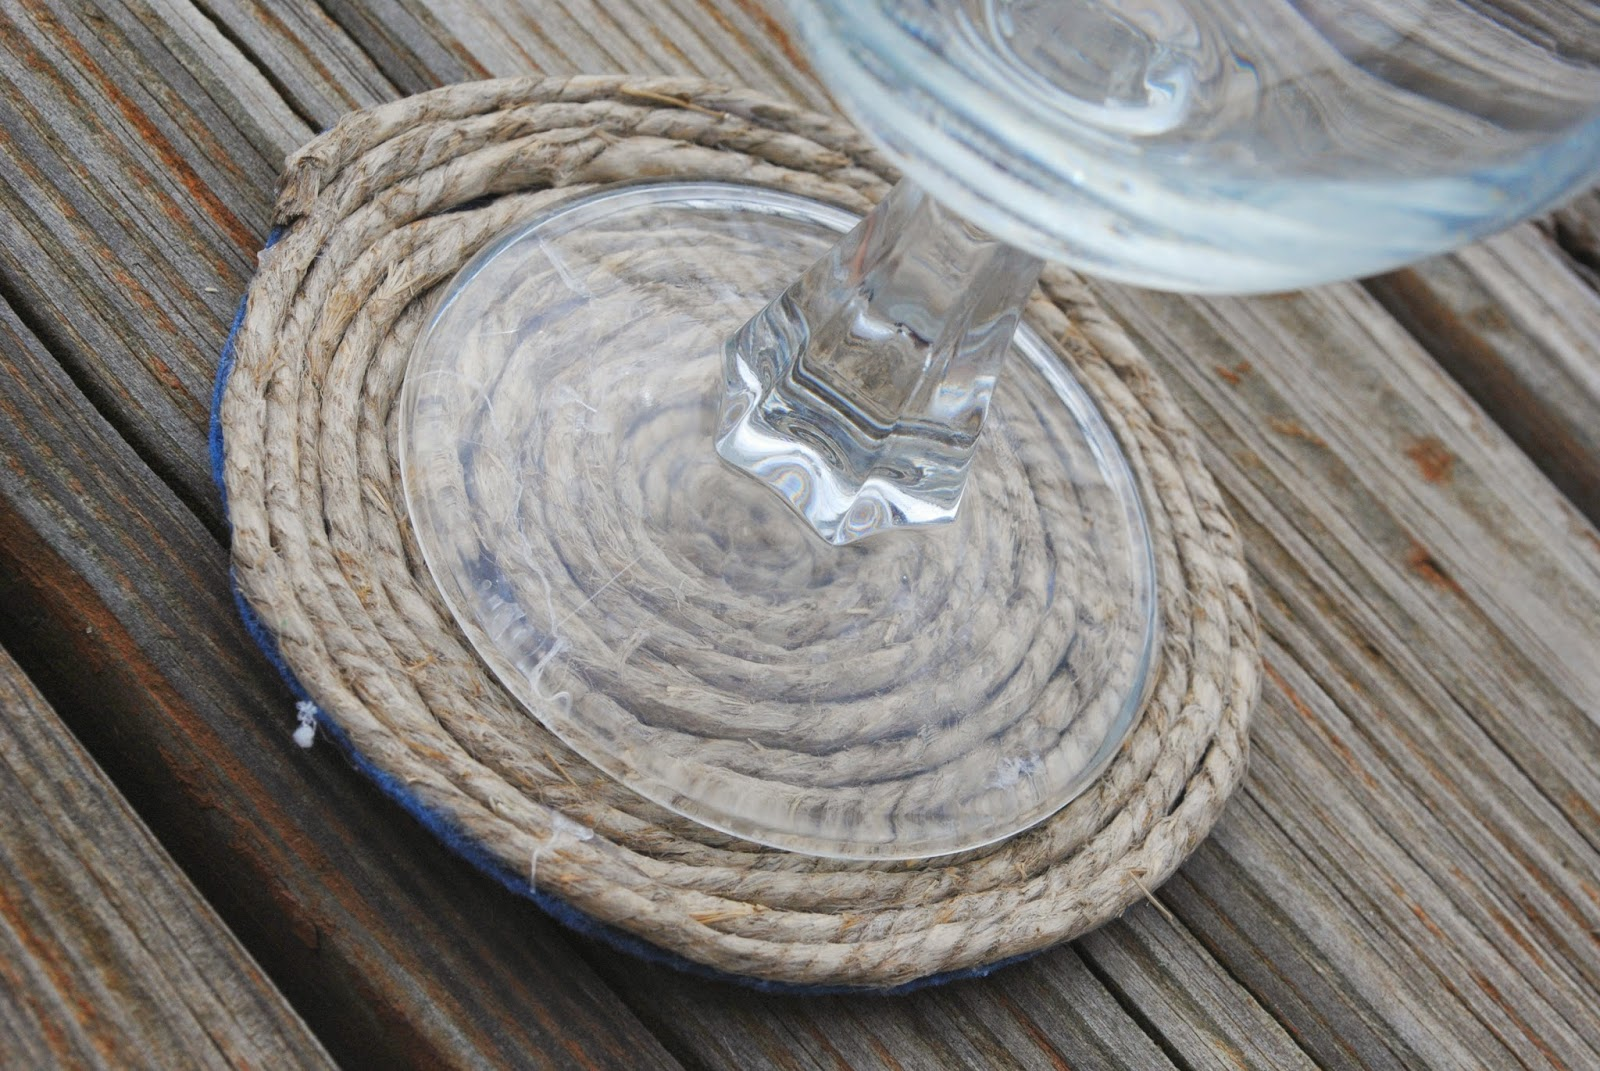 Glass on Nautical Rope Coaster